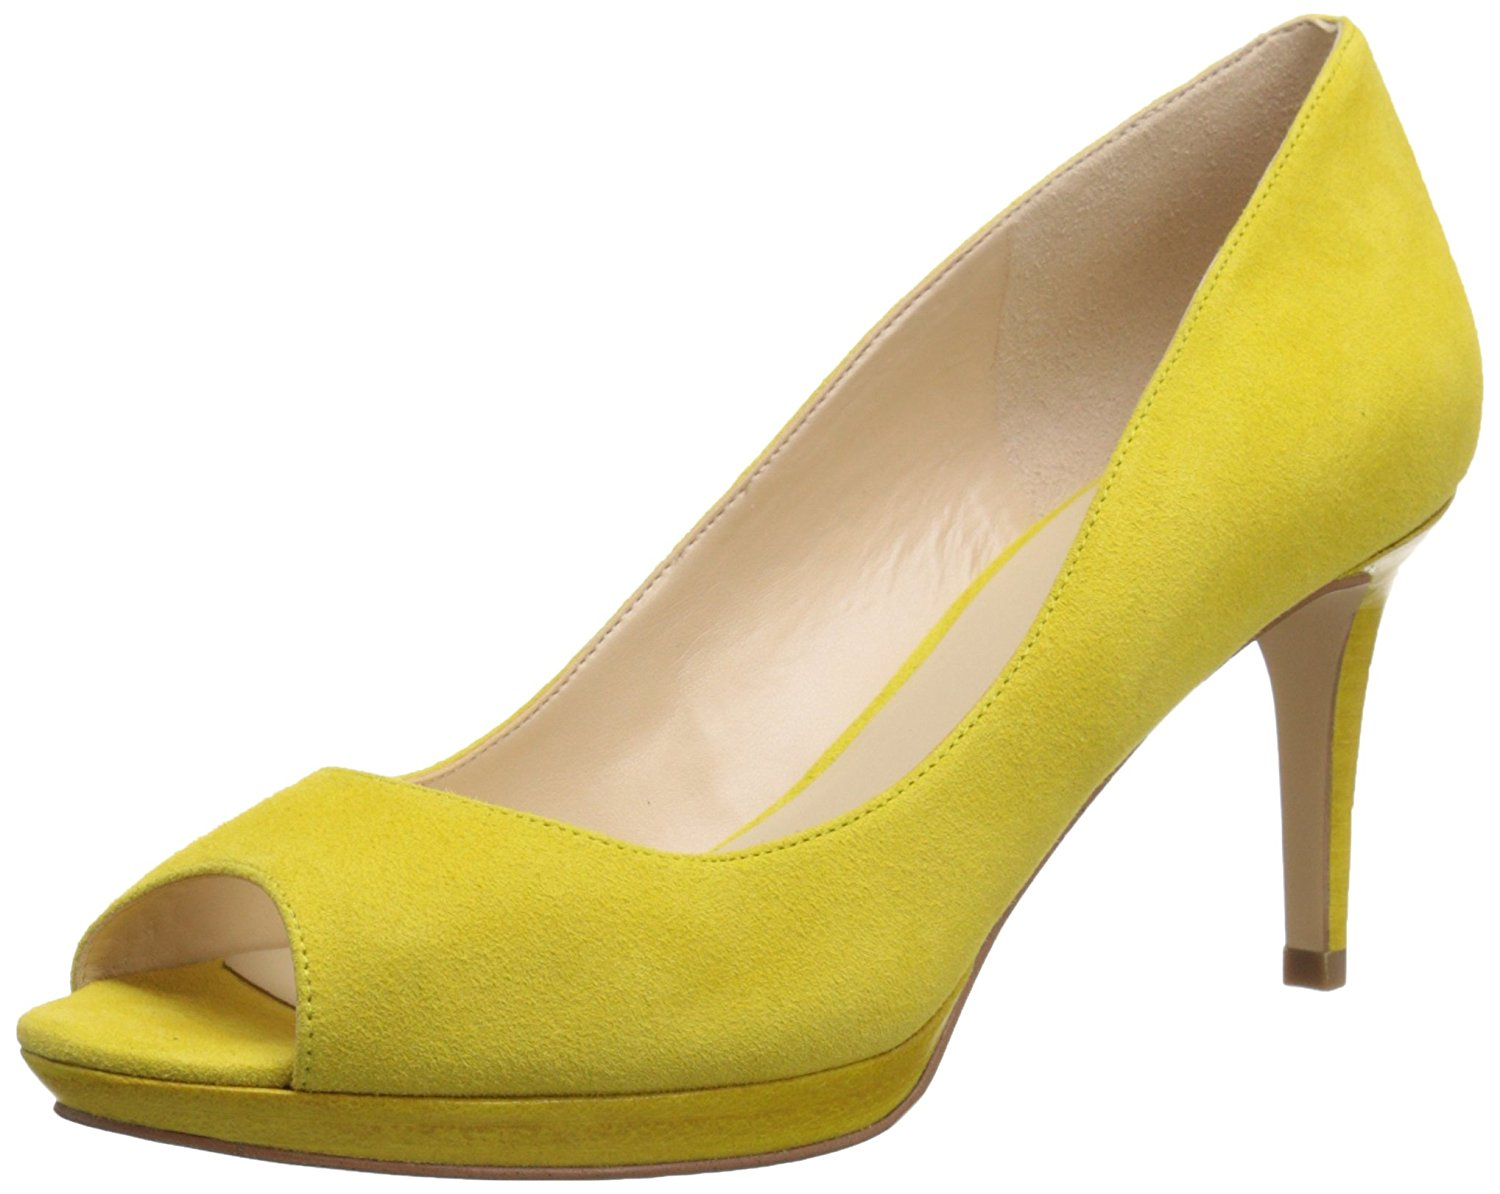 Image is loading Nine-West-Womens-Gelabelle-Peep-Toe-Classic-Pumps-